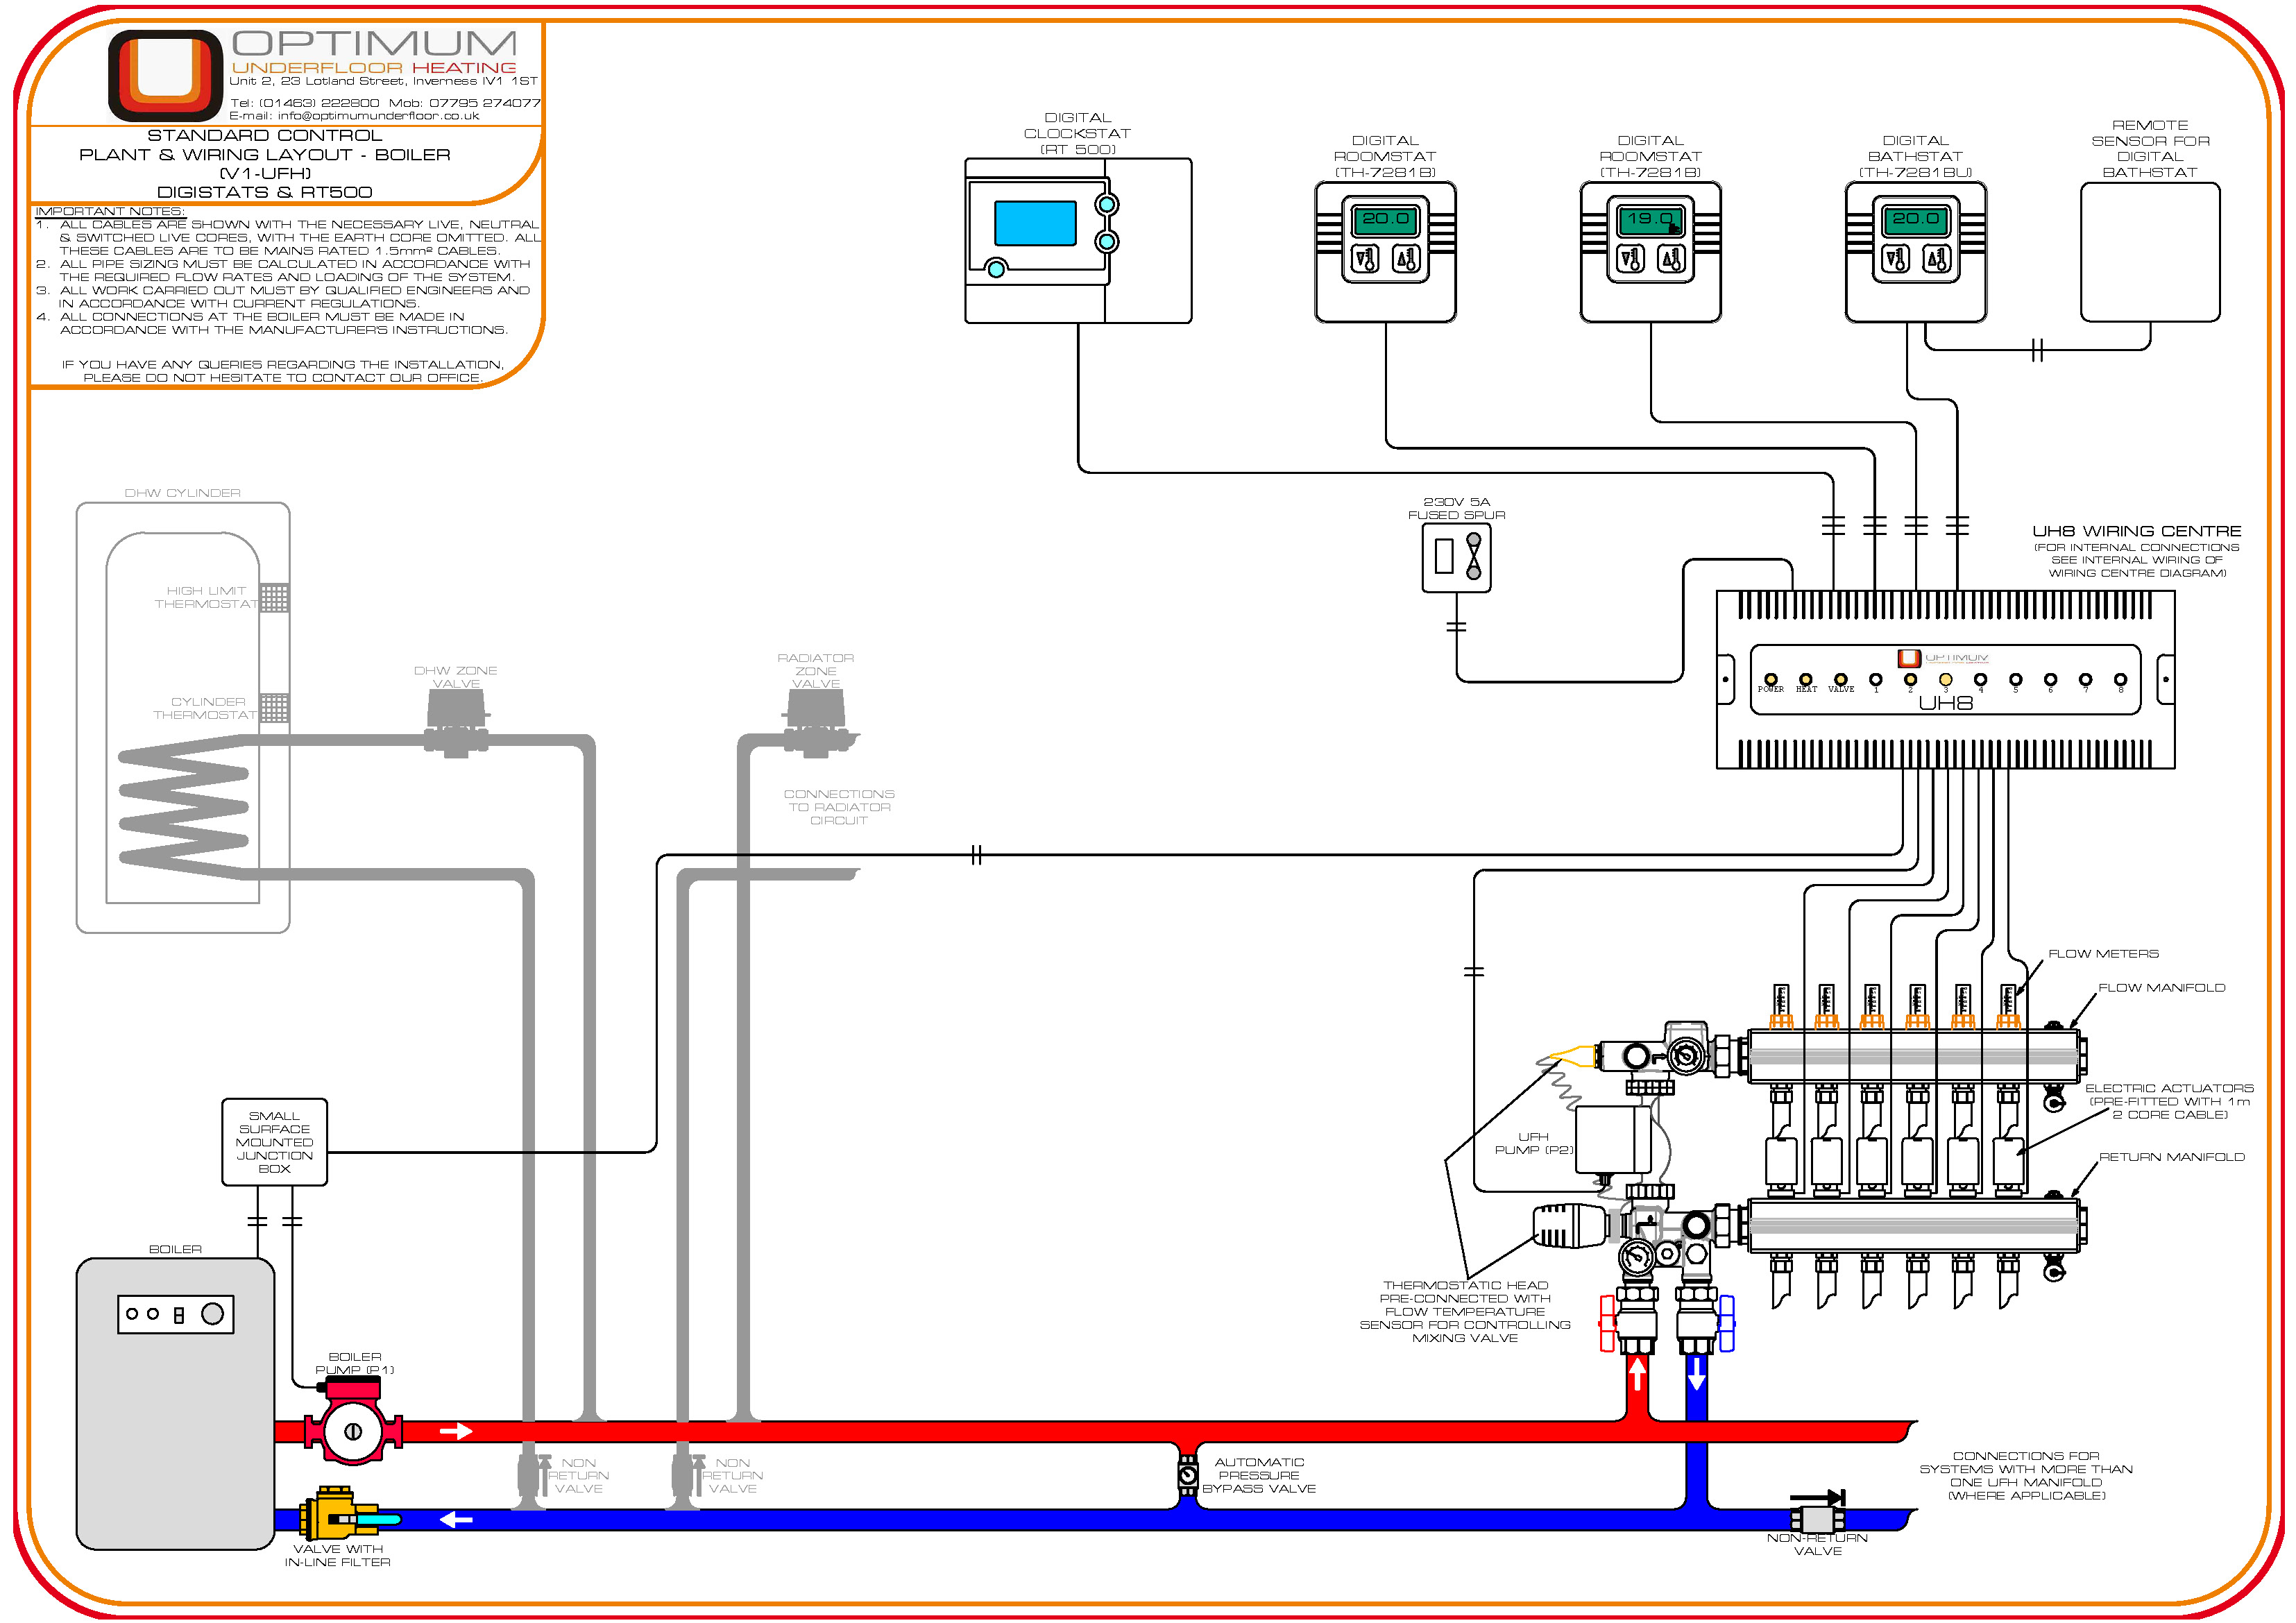 Underfloor Heating Manifold Wiring Diagram | Manual e-books